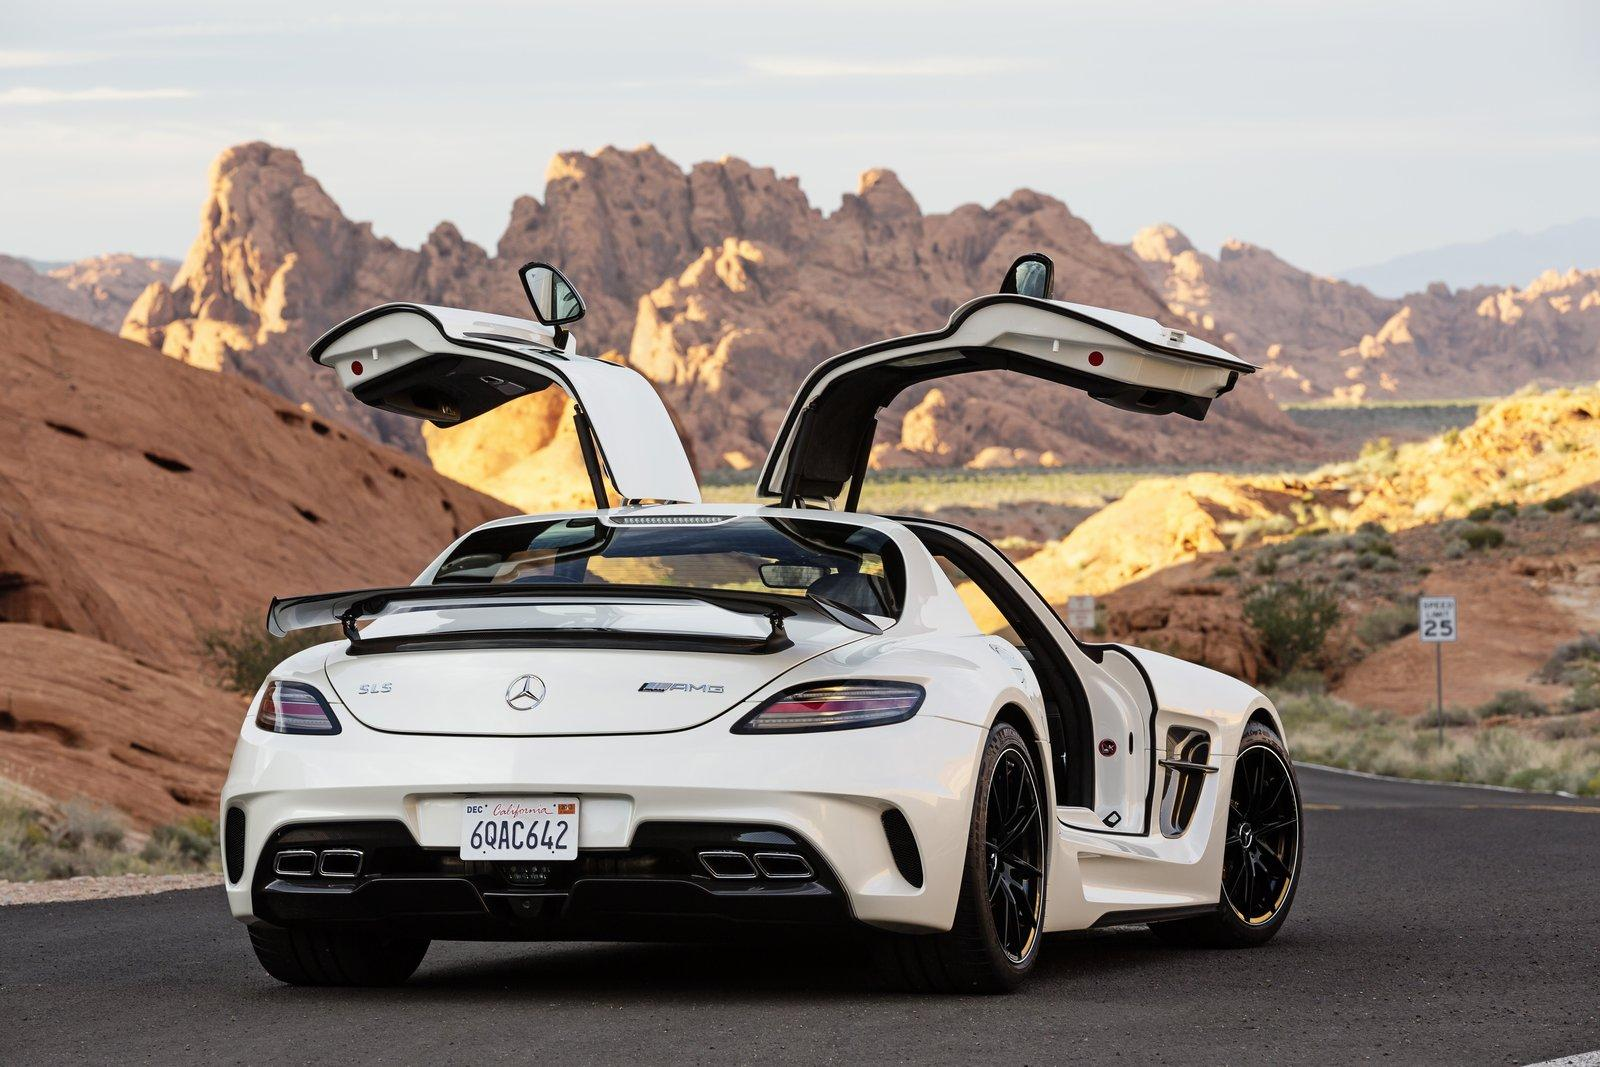 mercedes-sls-amg-2014-gia-it-nhat-275-000-usd3